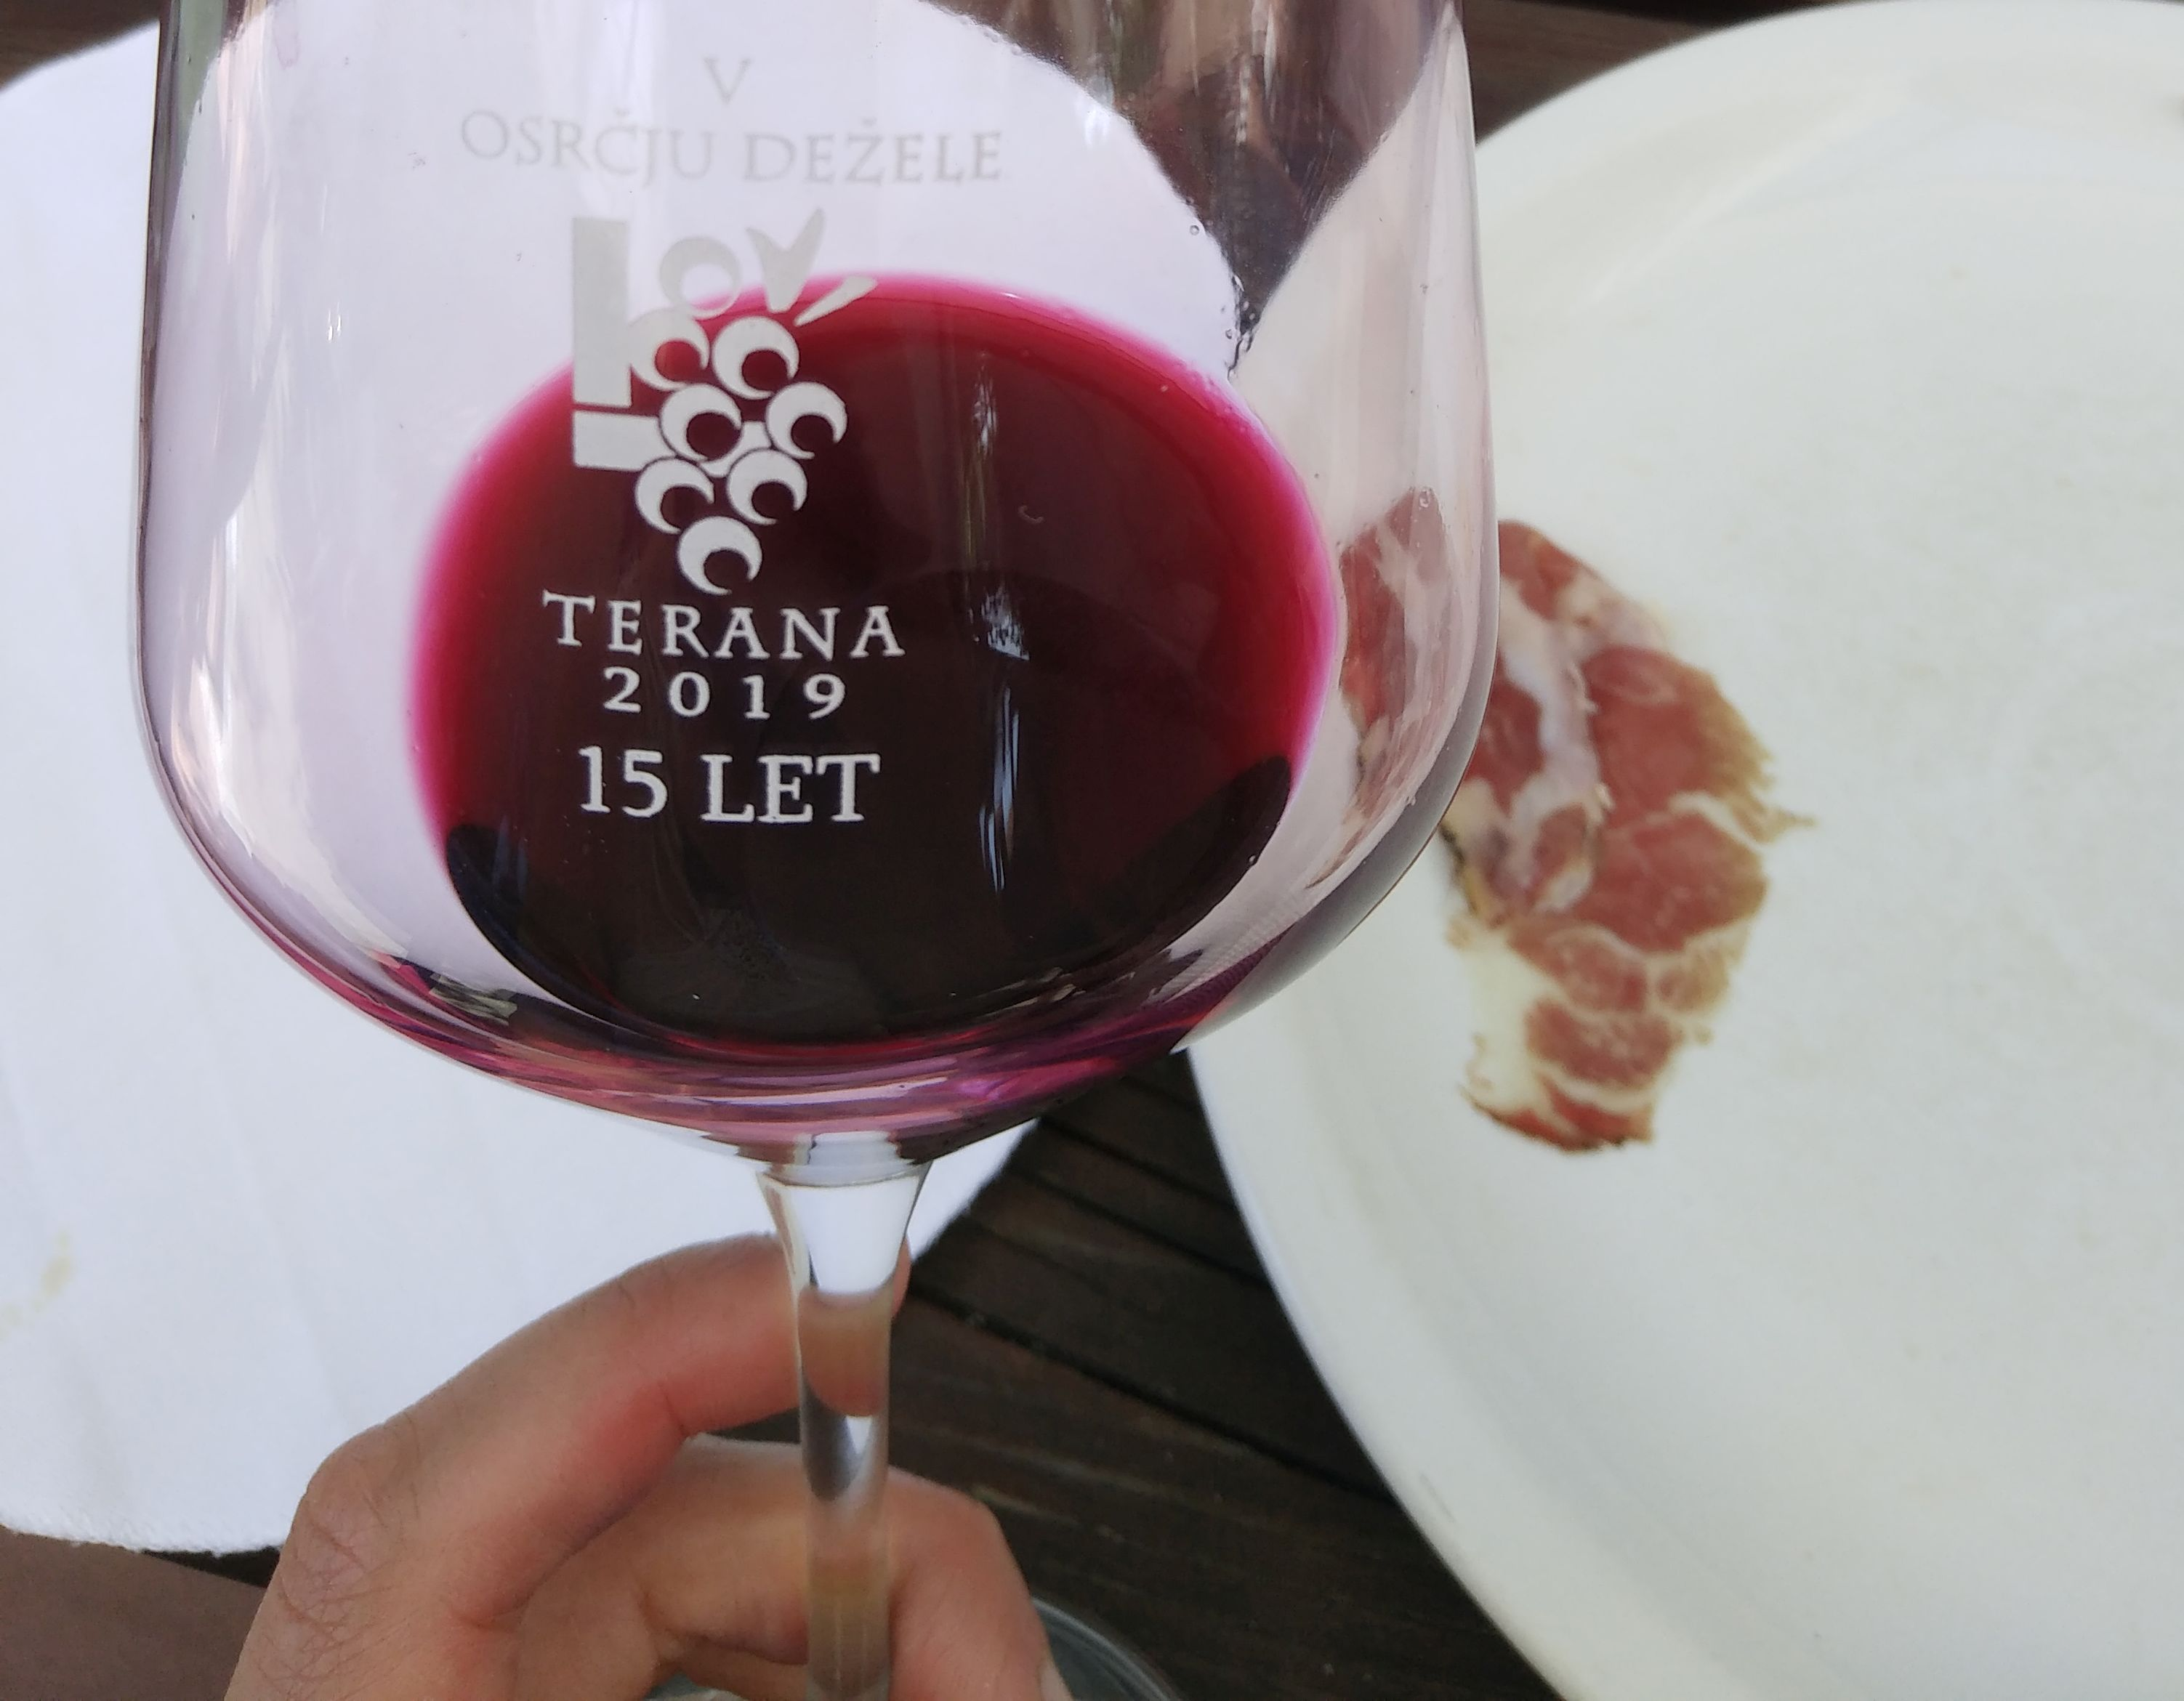 Wine glass containing Teran wine, which is a red wine